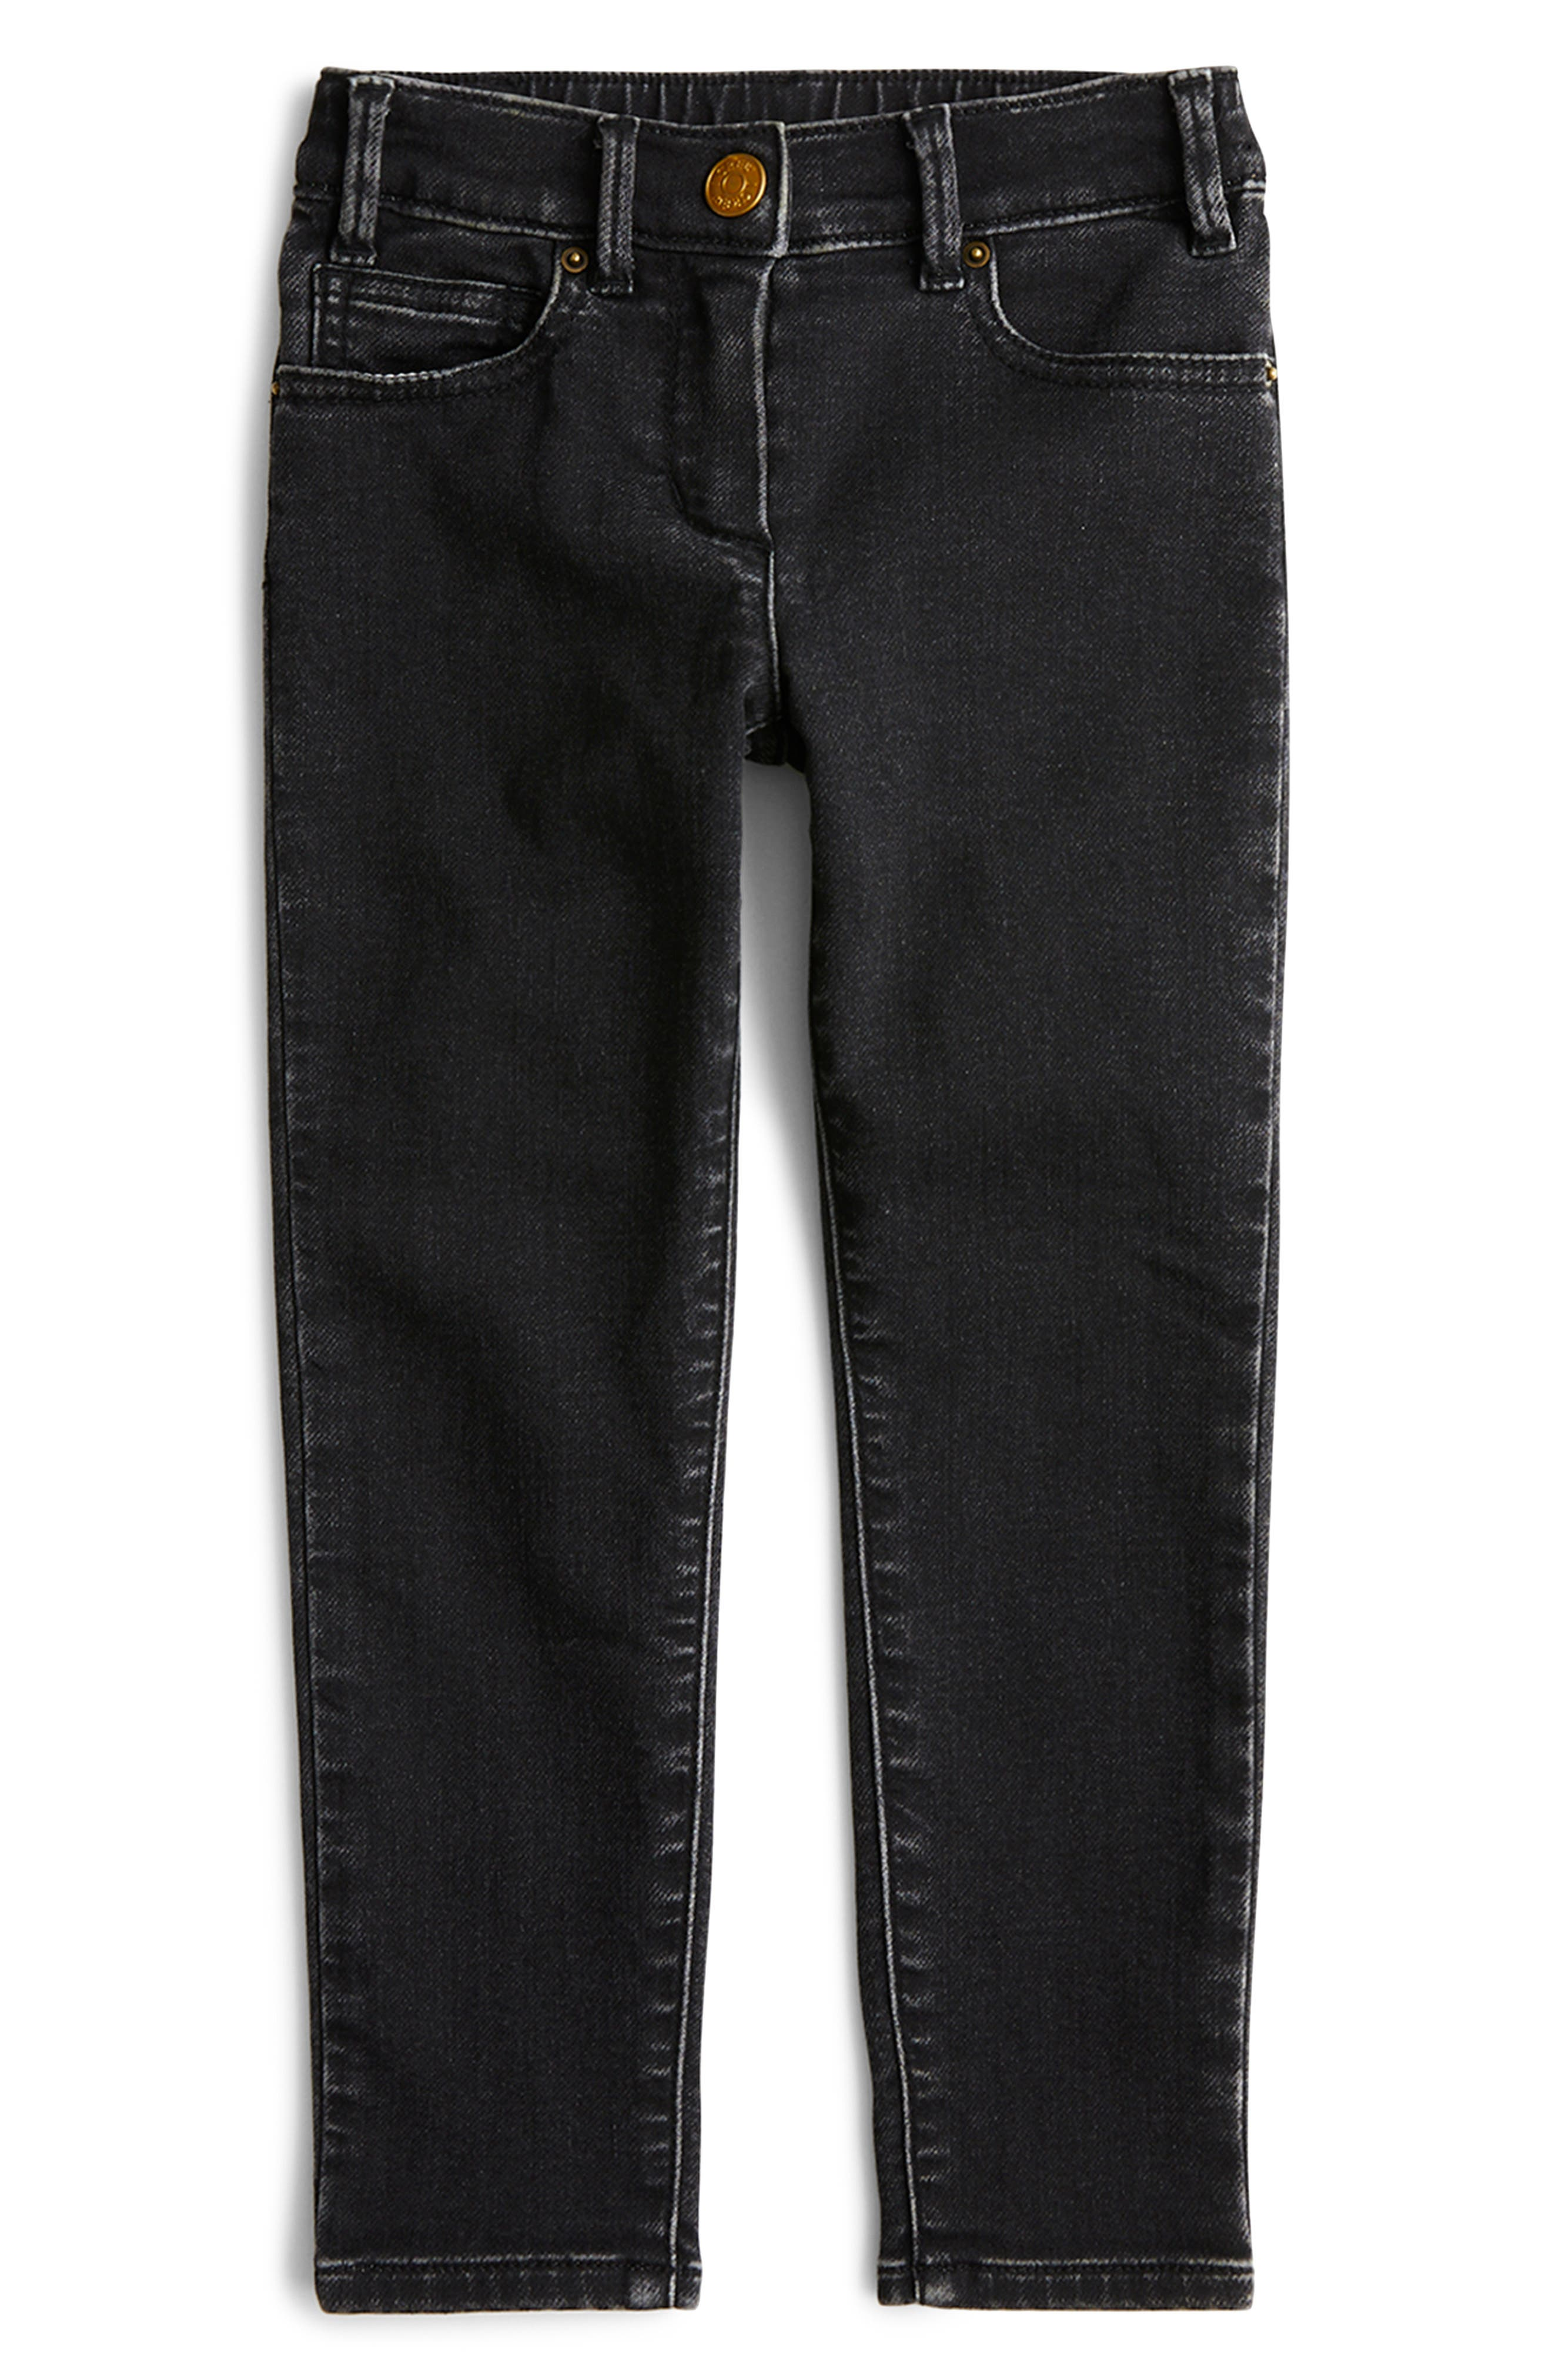 Toddler Girls Crewcuts By Jcrew Runaround Straight Leg Jeans Size 2T  Black